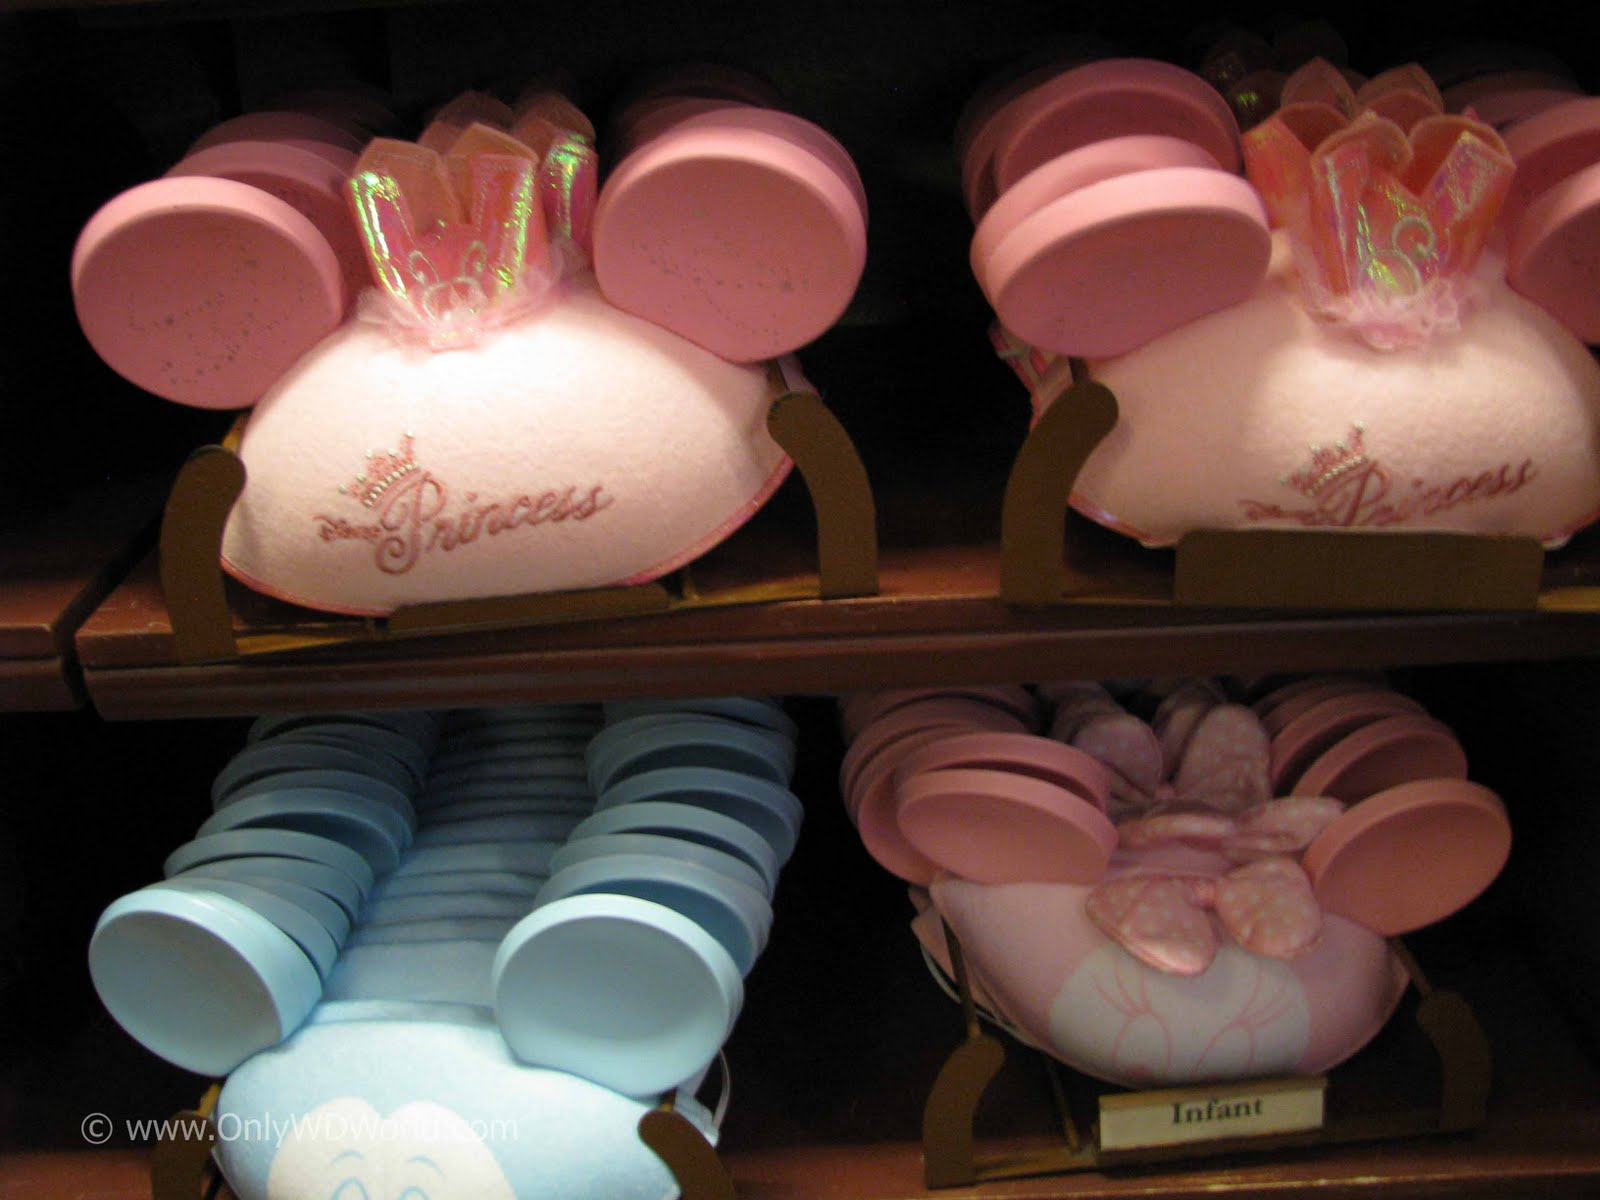 Pirate Mouse Ear Hats Are Very